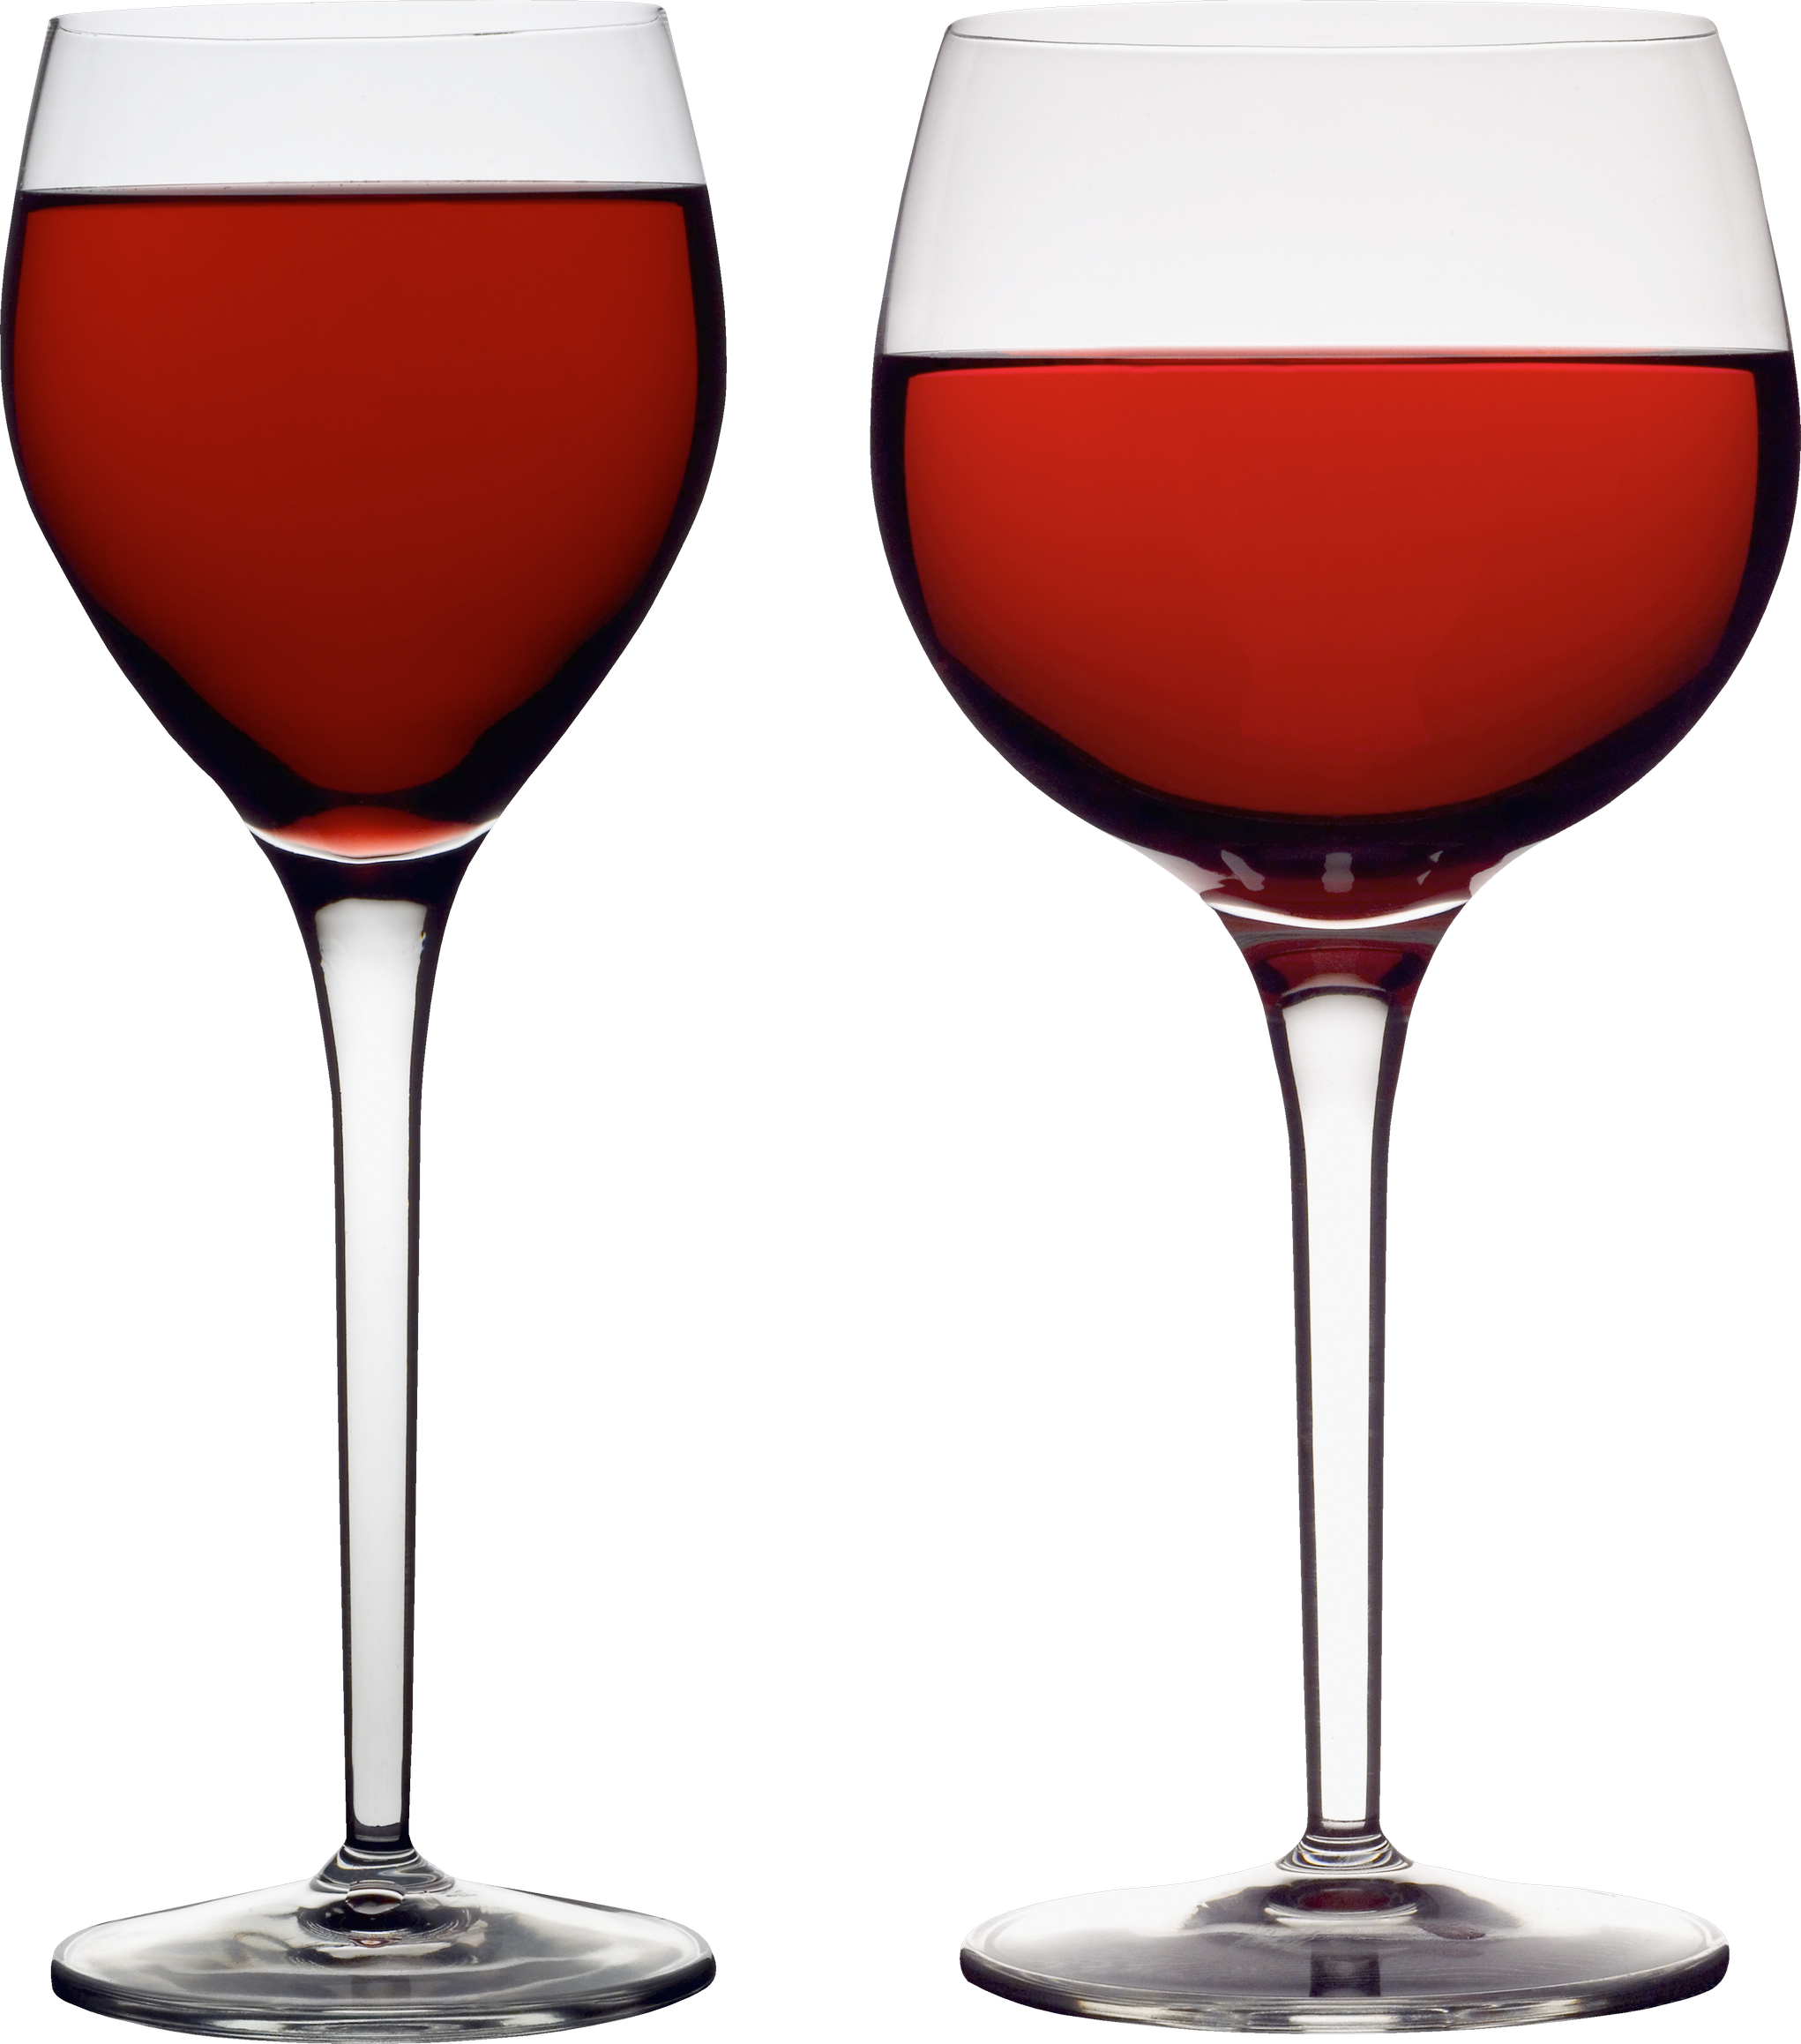 Transparent wine glass png. Image purepng free cc